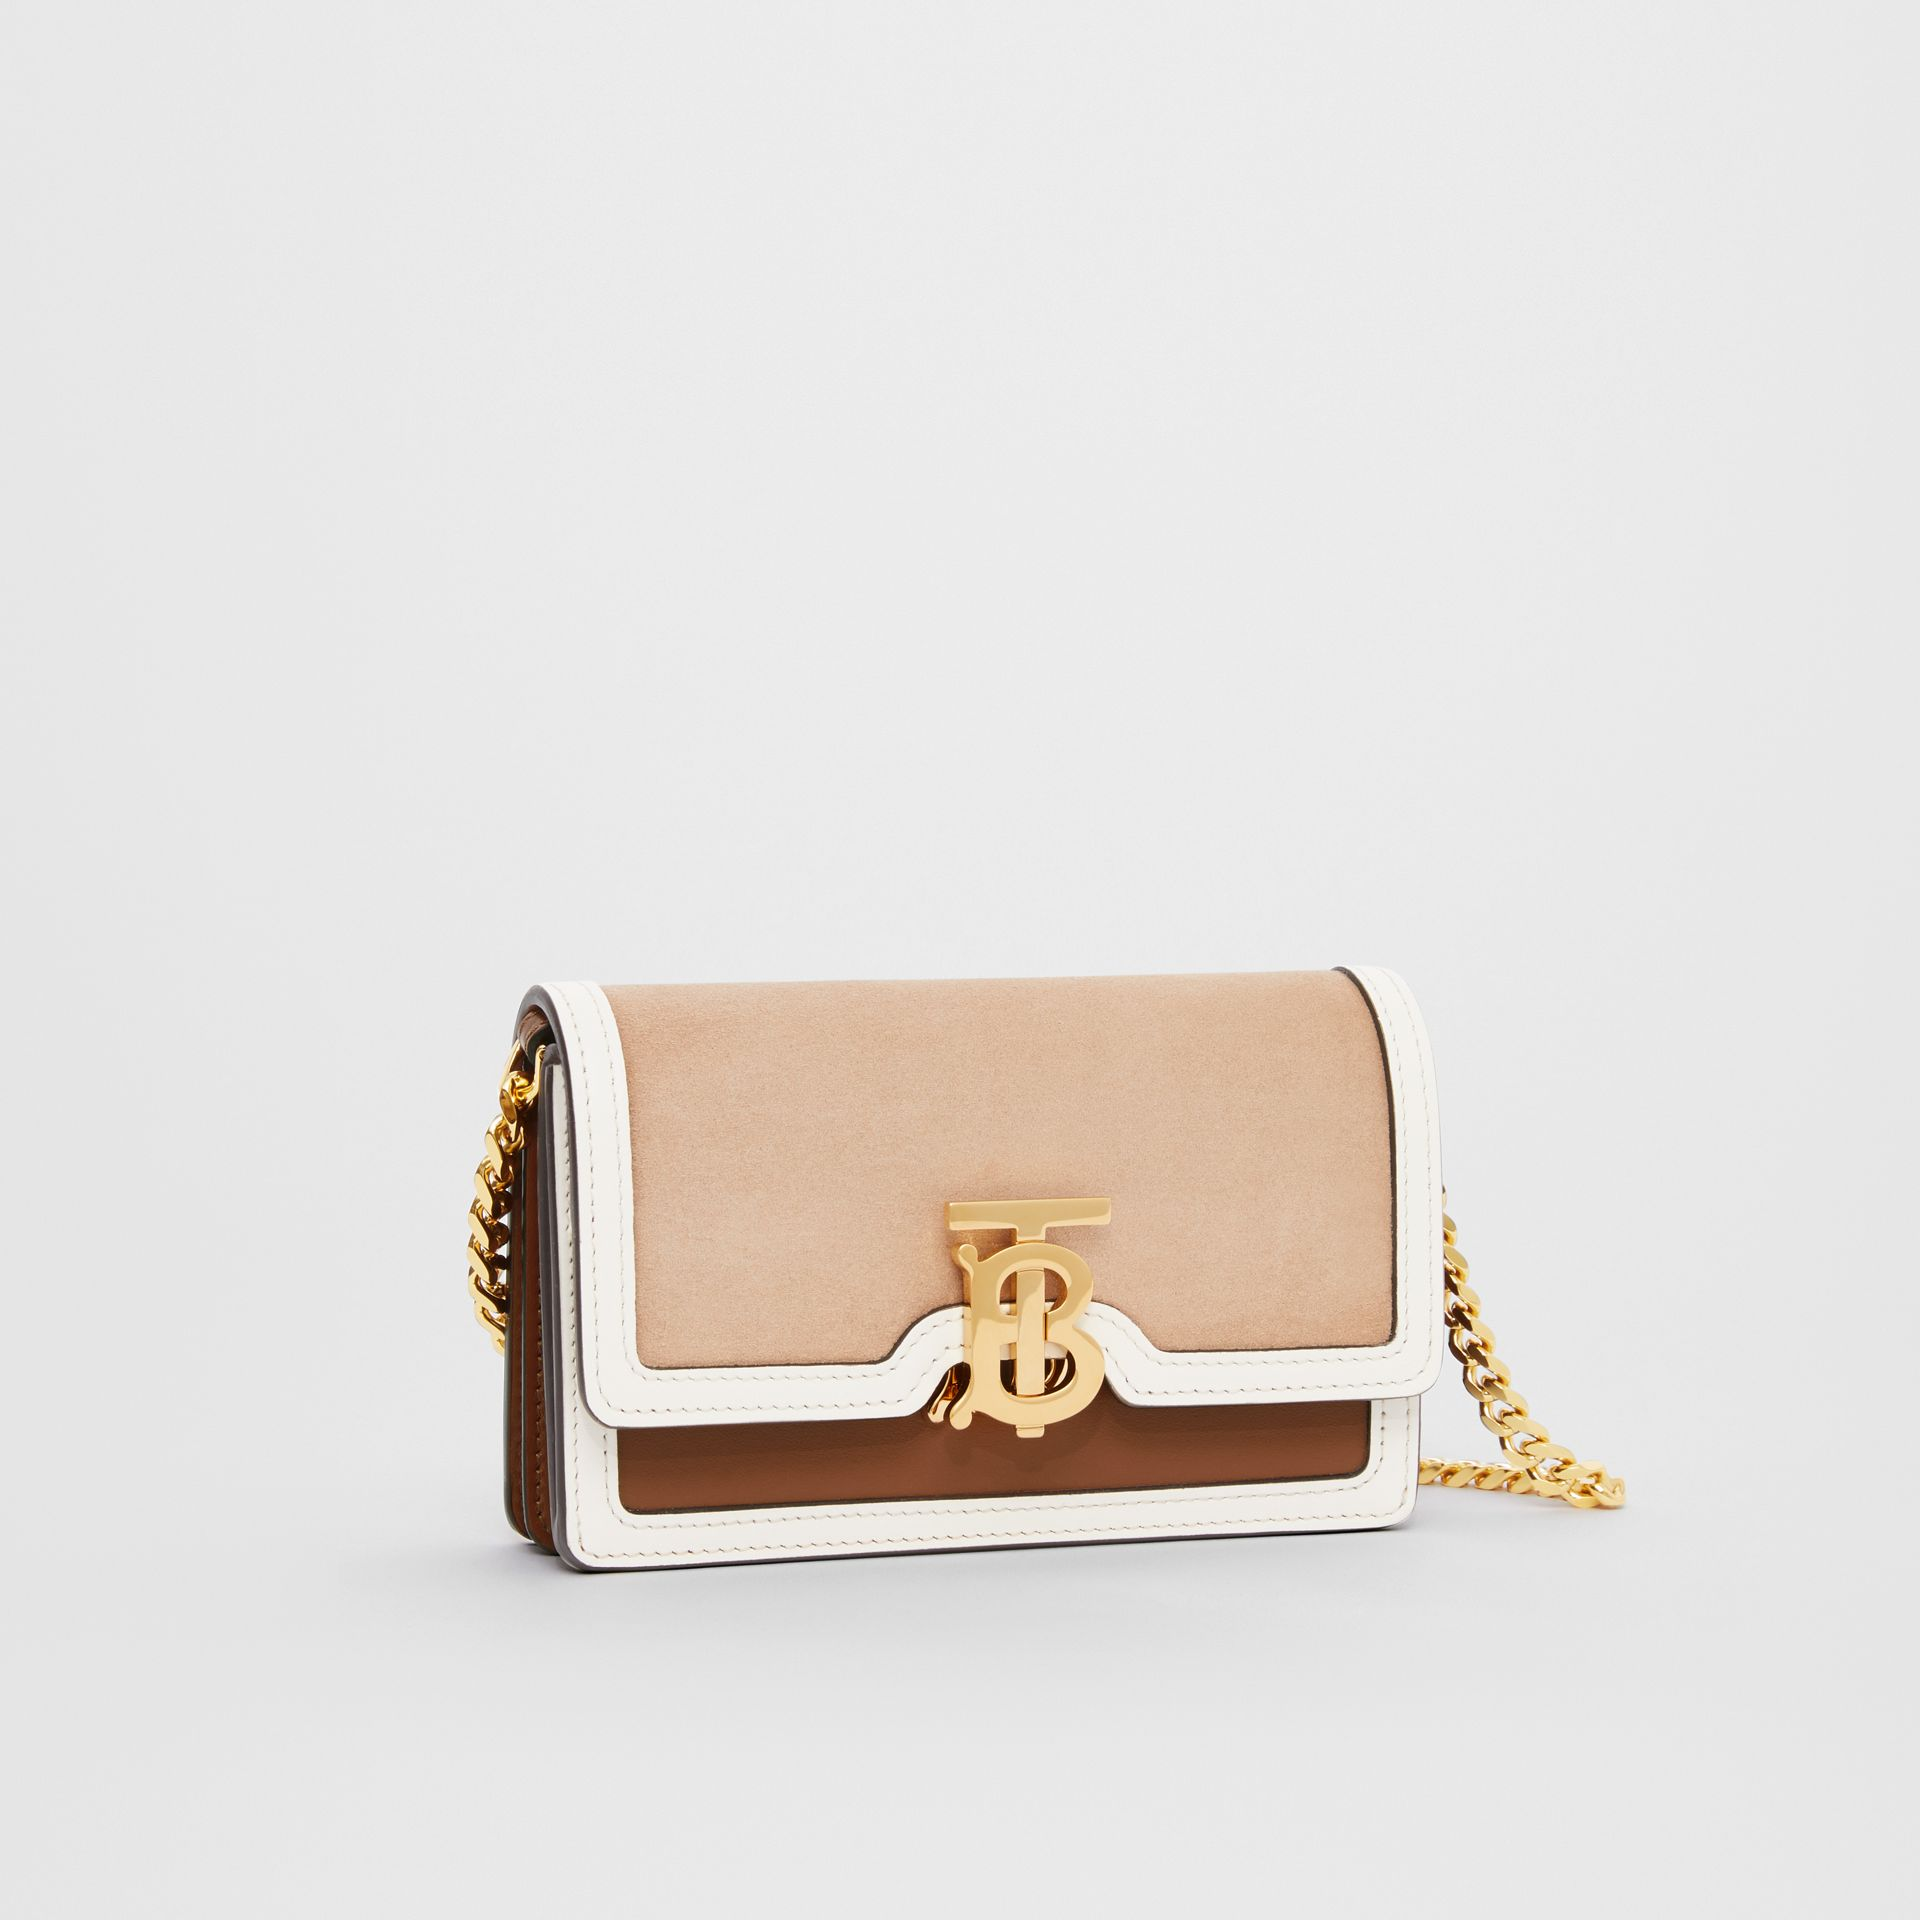 Mini Suede and Two-tone Leather Shoulder Bag in Biscuit - Women | Burberry United Kingdom - gallery image 6